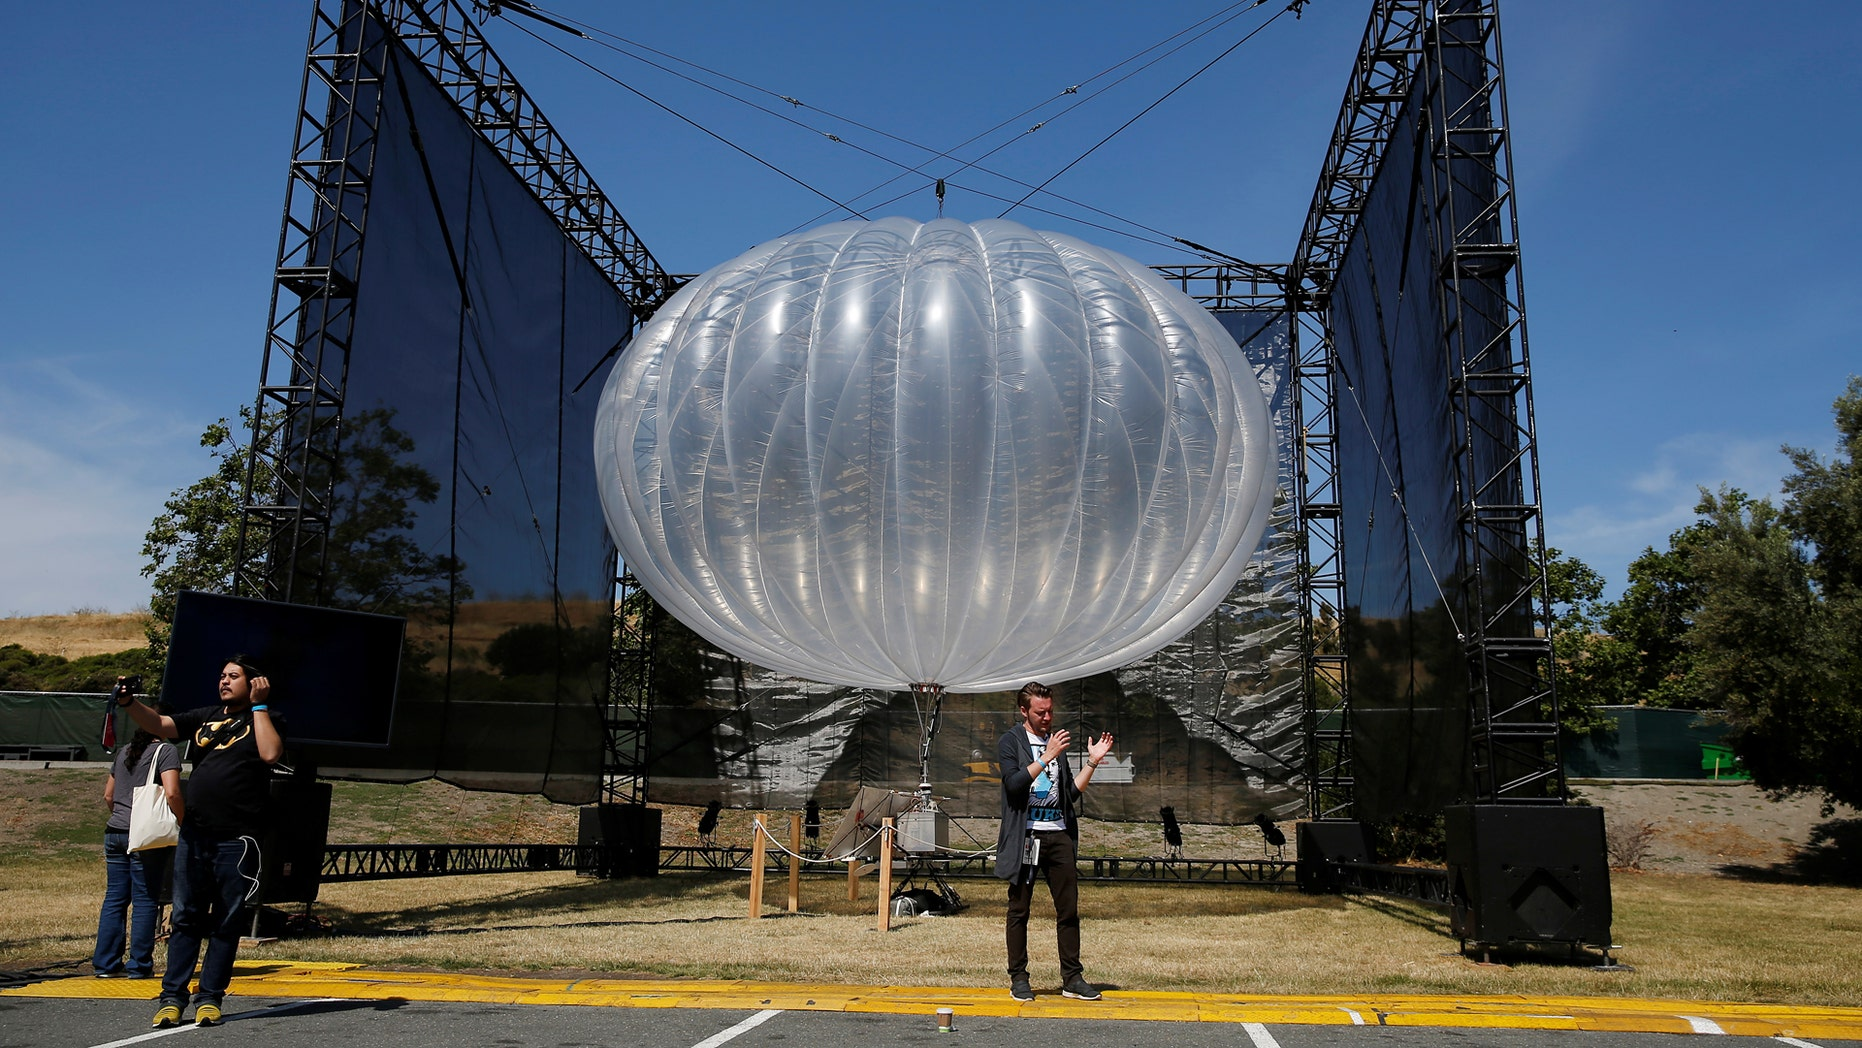 File photo - A Google Project Loon internet balloon is seen at the Google I/O 2016 developers conference in Mountain View, California May 19, 2016. (REUTERS/Stephen Lam)